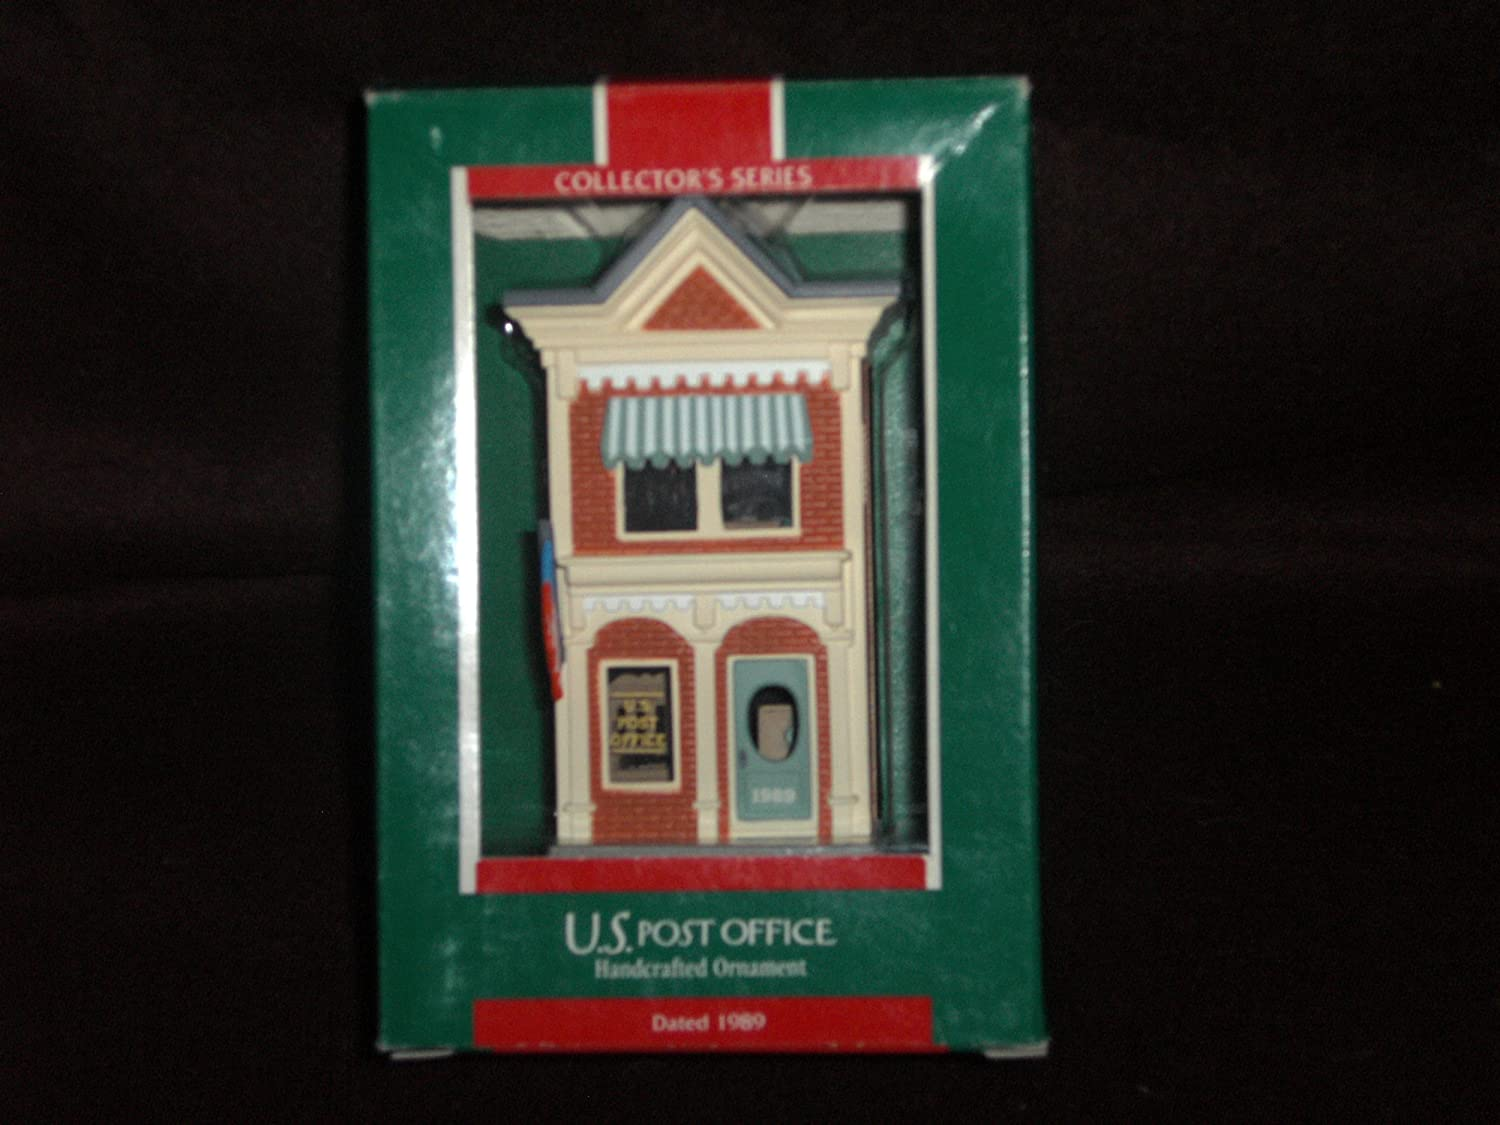 Hallmark 1989 U.S. Post Office Handcrafted Keepsake Ornament Collector's Series